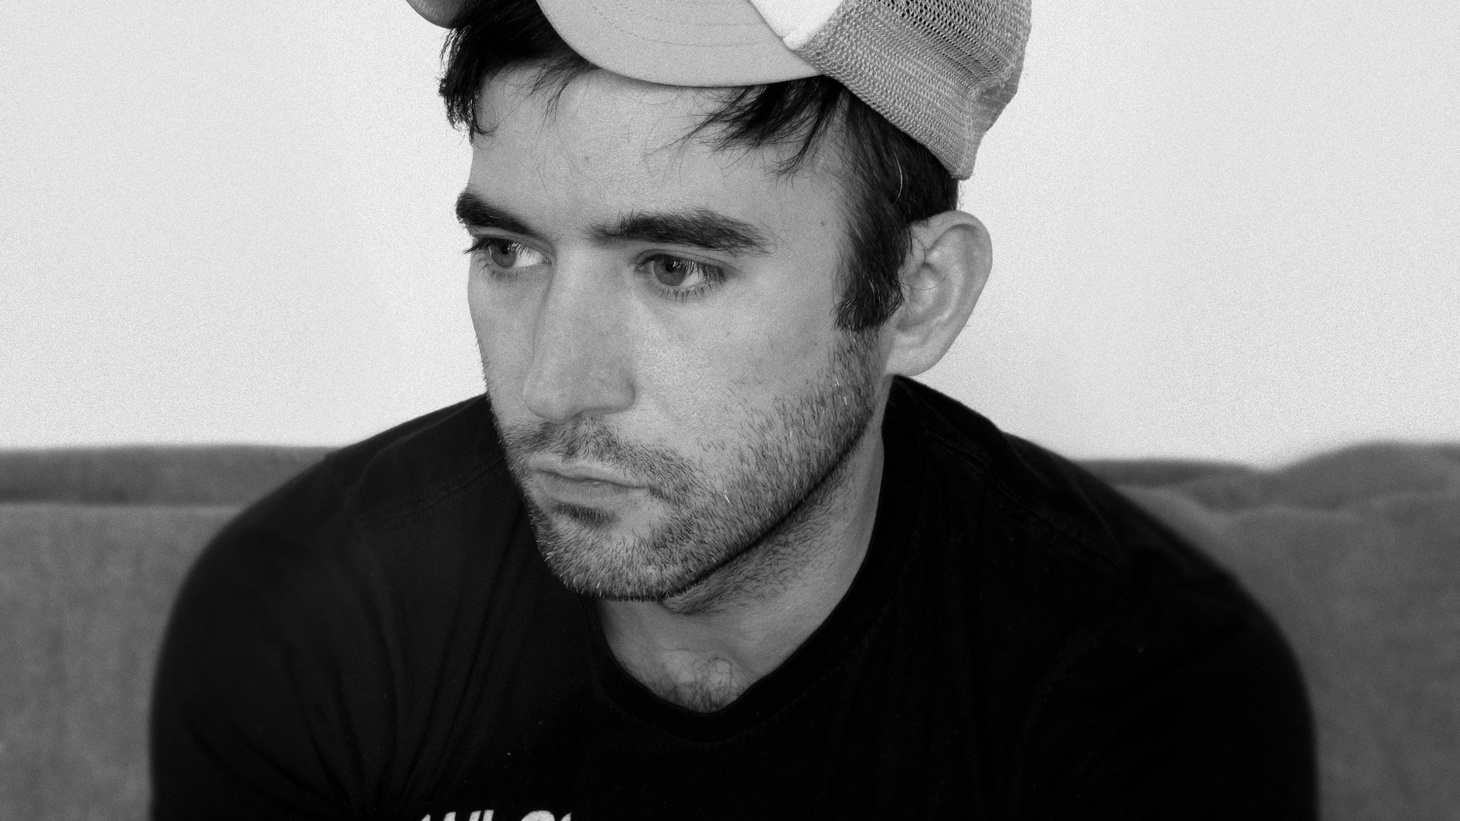 The new album by Sufjan Stevens is his first in five years and is intensely personal. Named after his mother and stepfather, the album features an array of songs that are heartbreaking in their beauty.